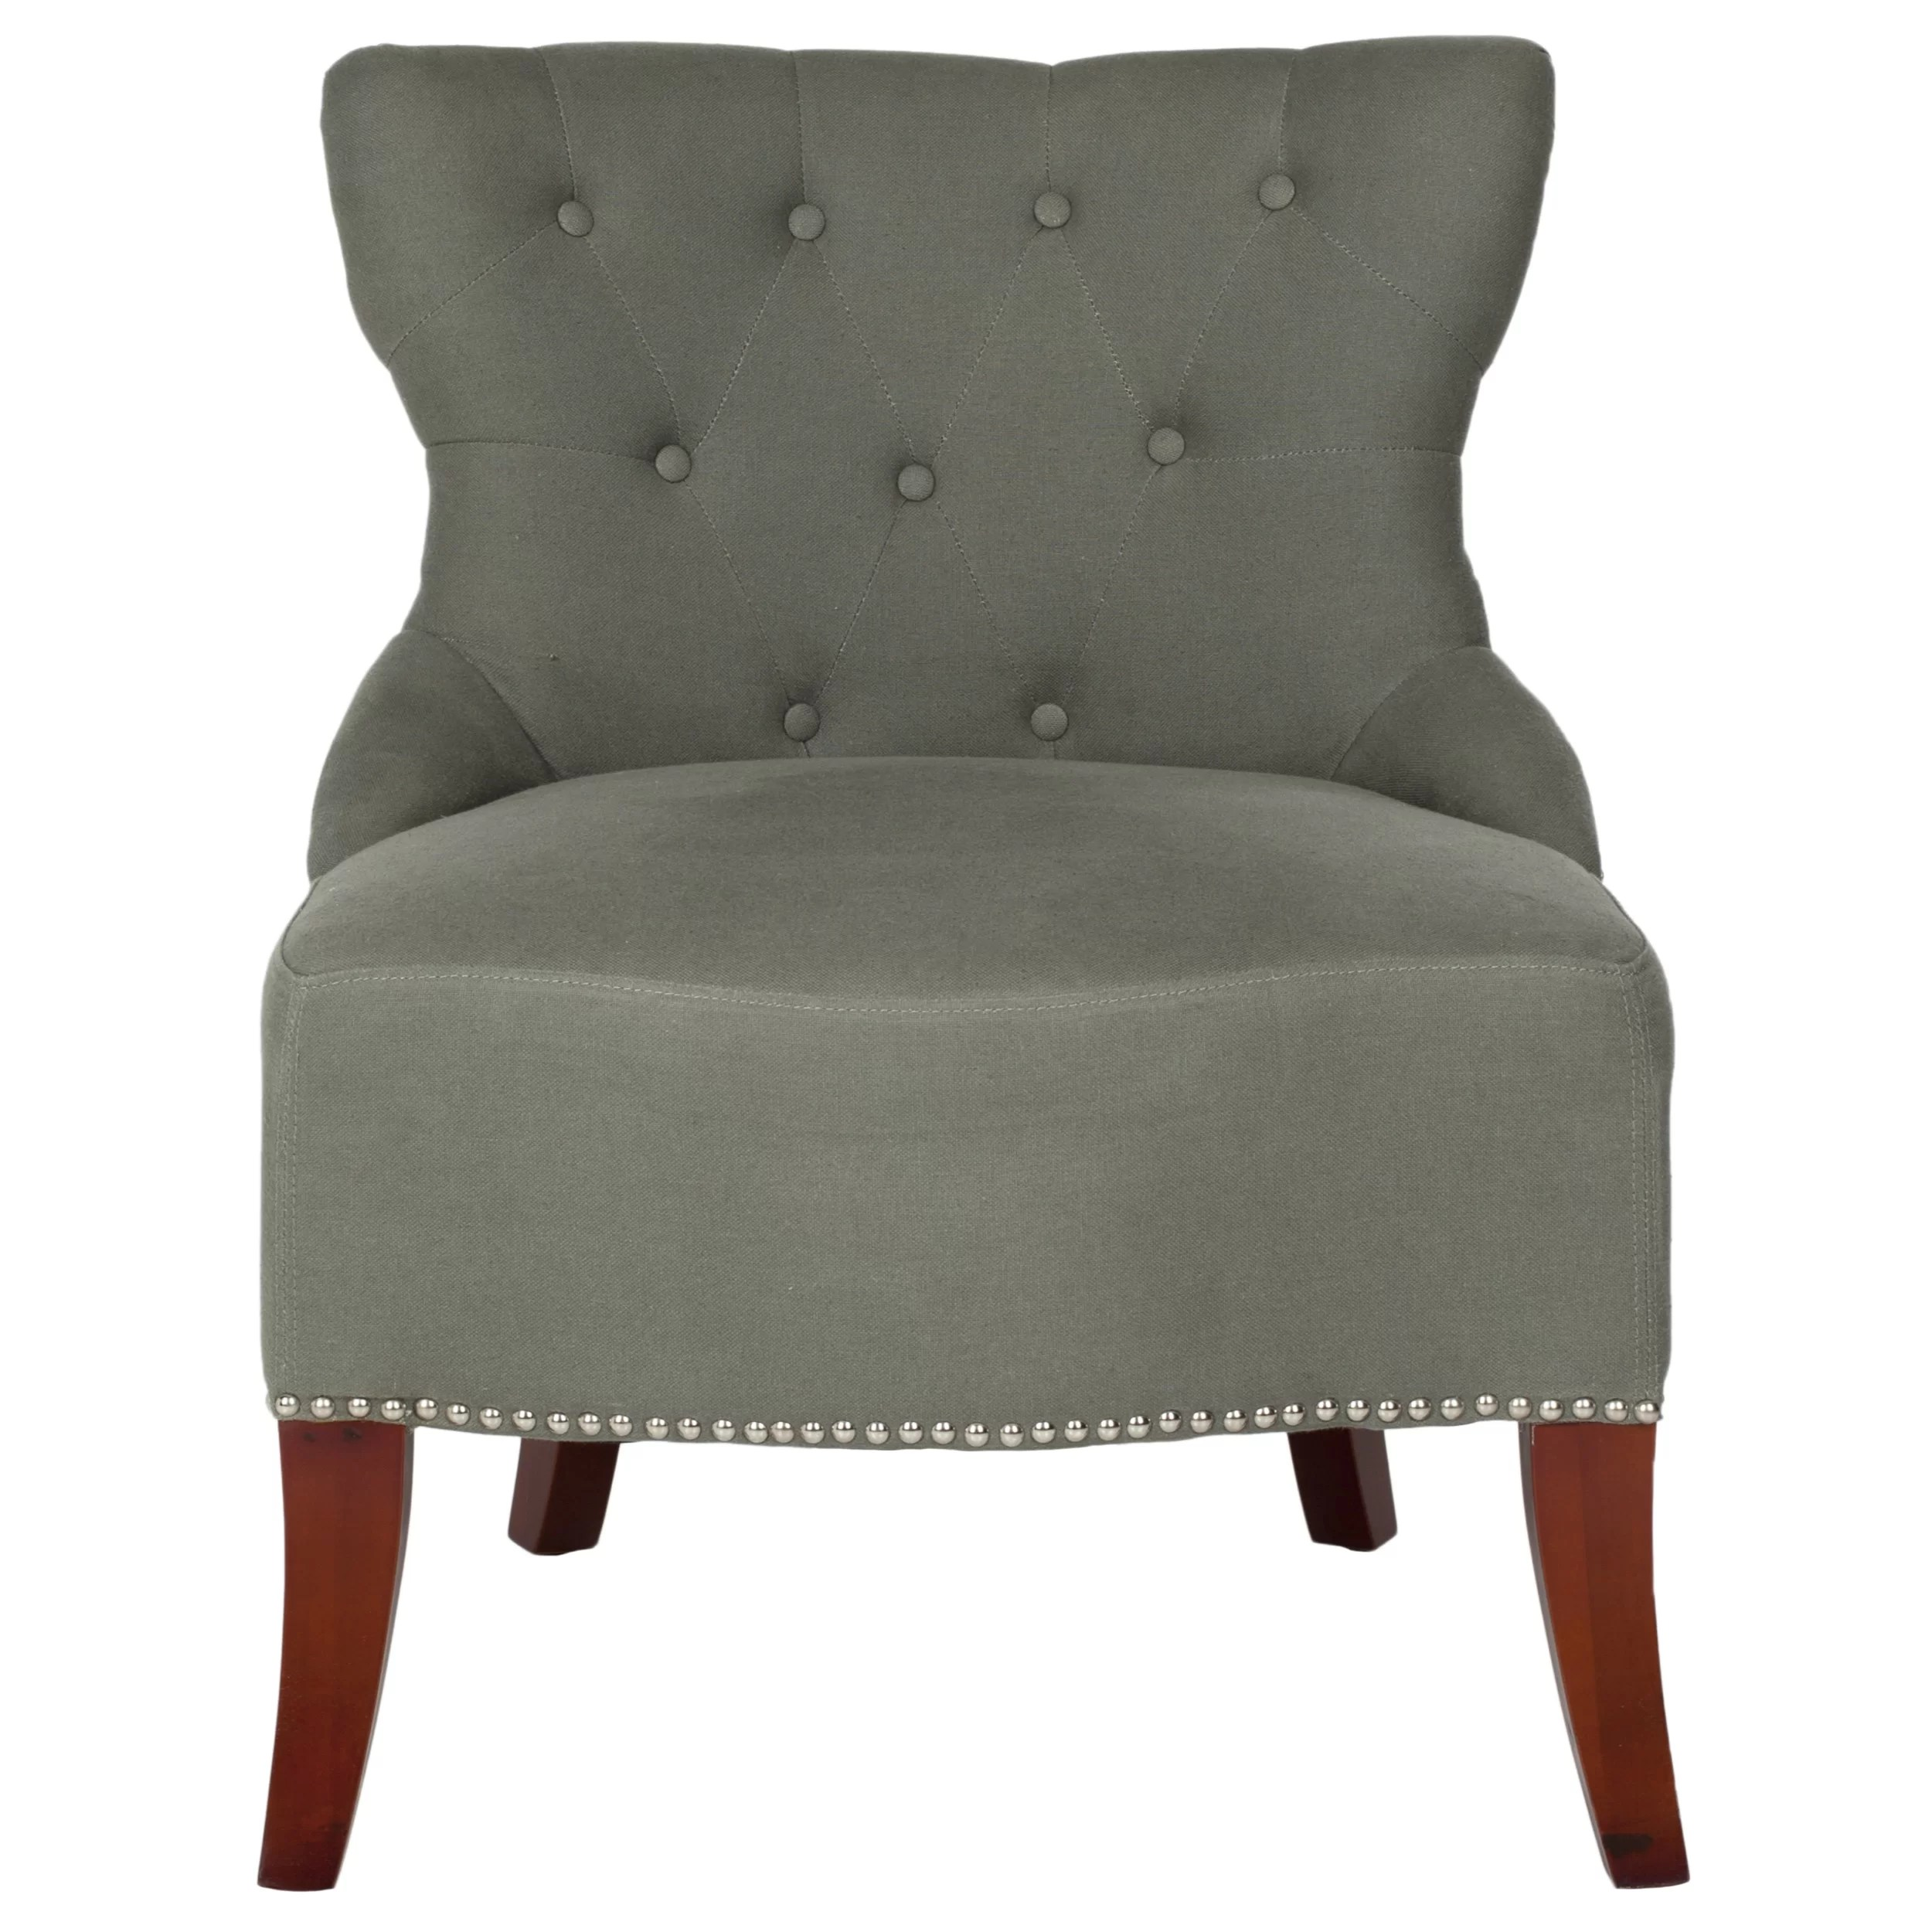 Tufted Slipper Chair Safavieh Zachary Tufted Living Room Slipper Chair